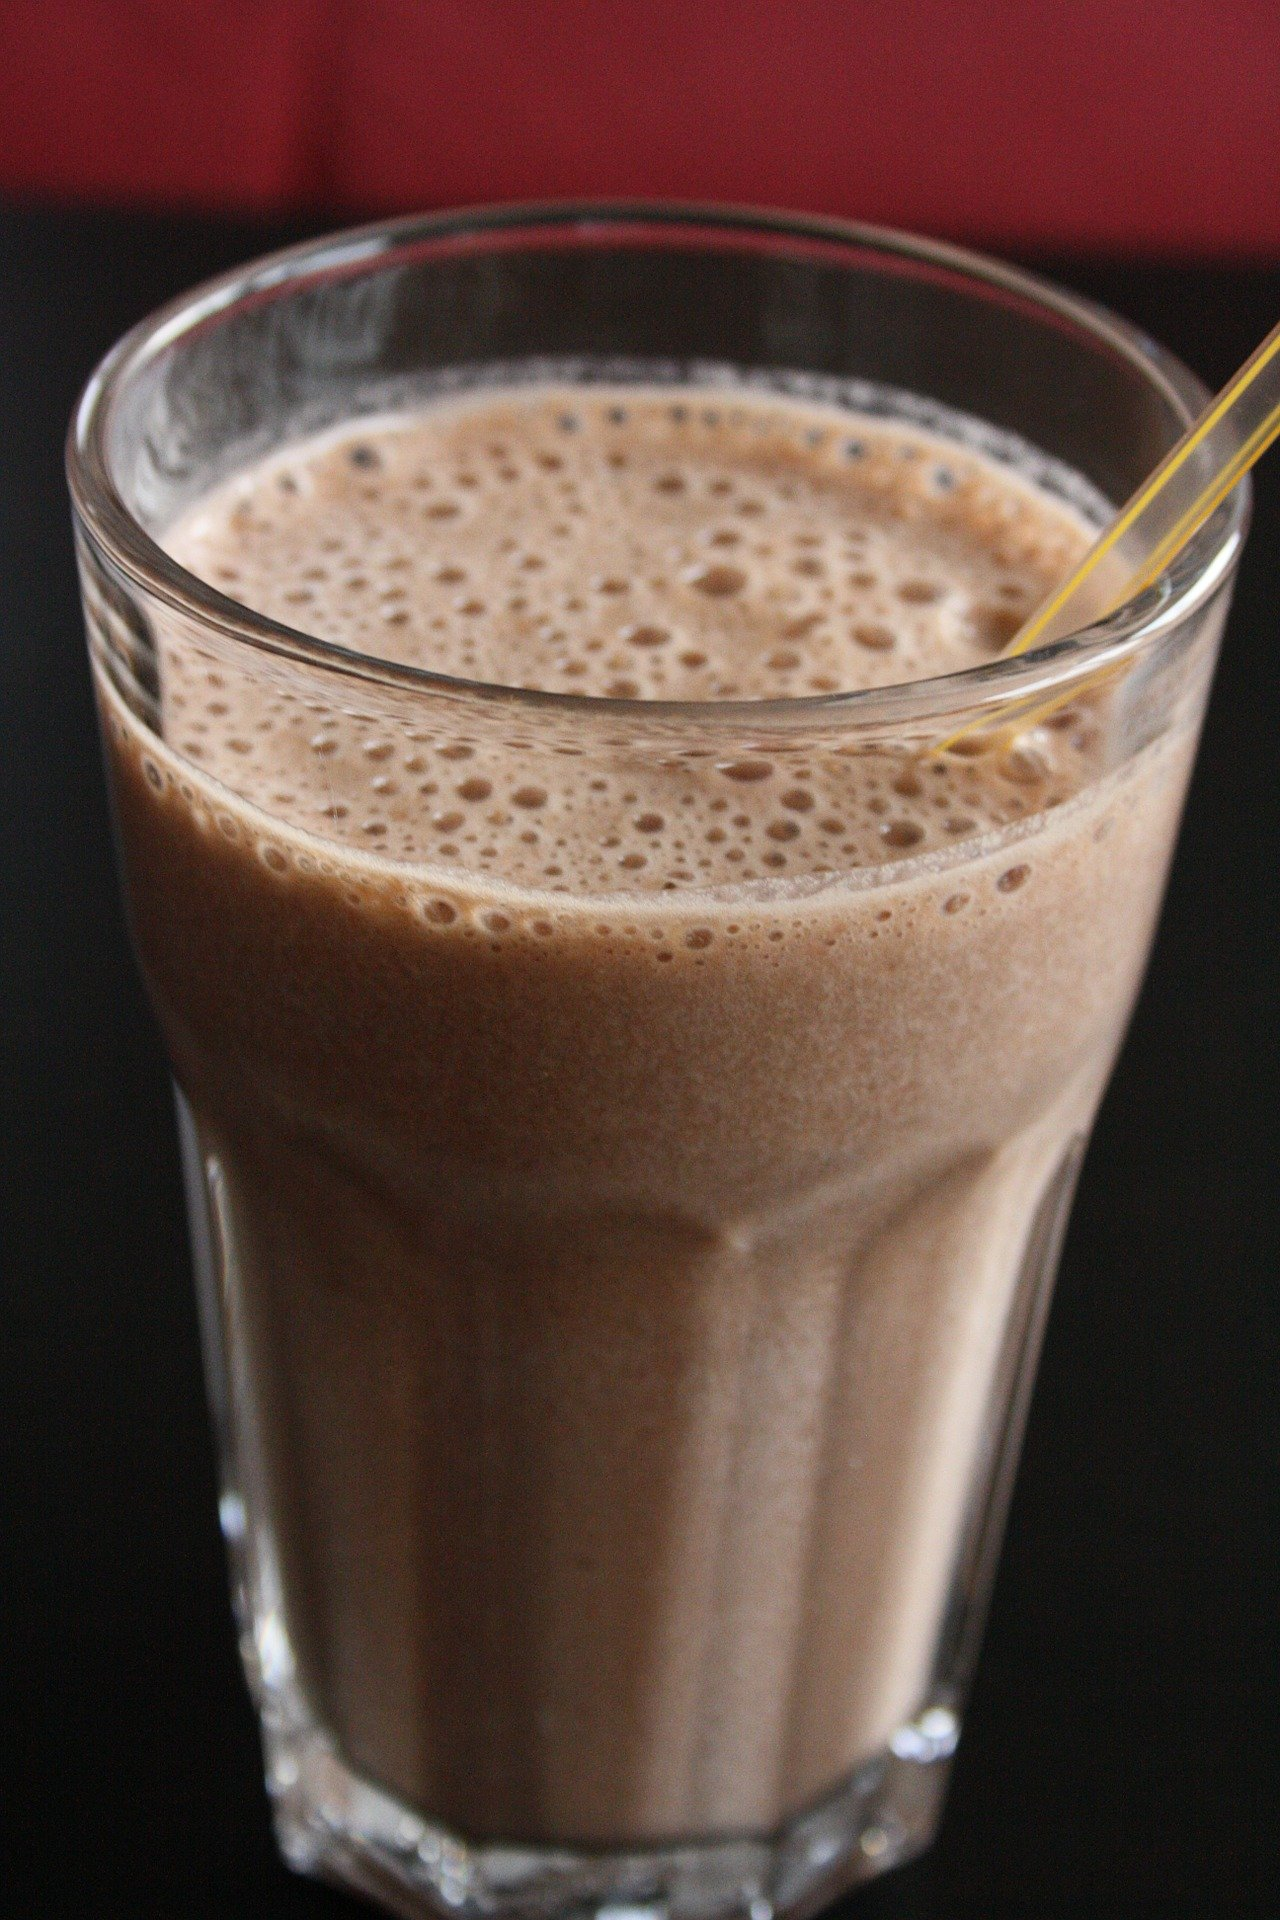 Chocolate + Protein + = ??